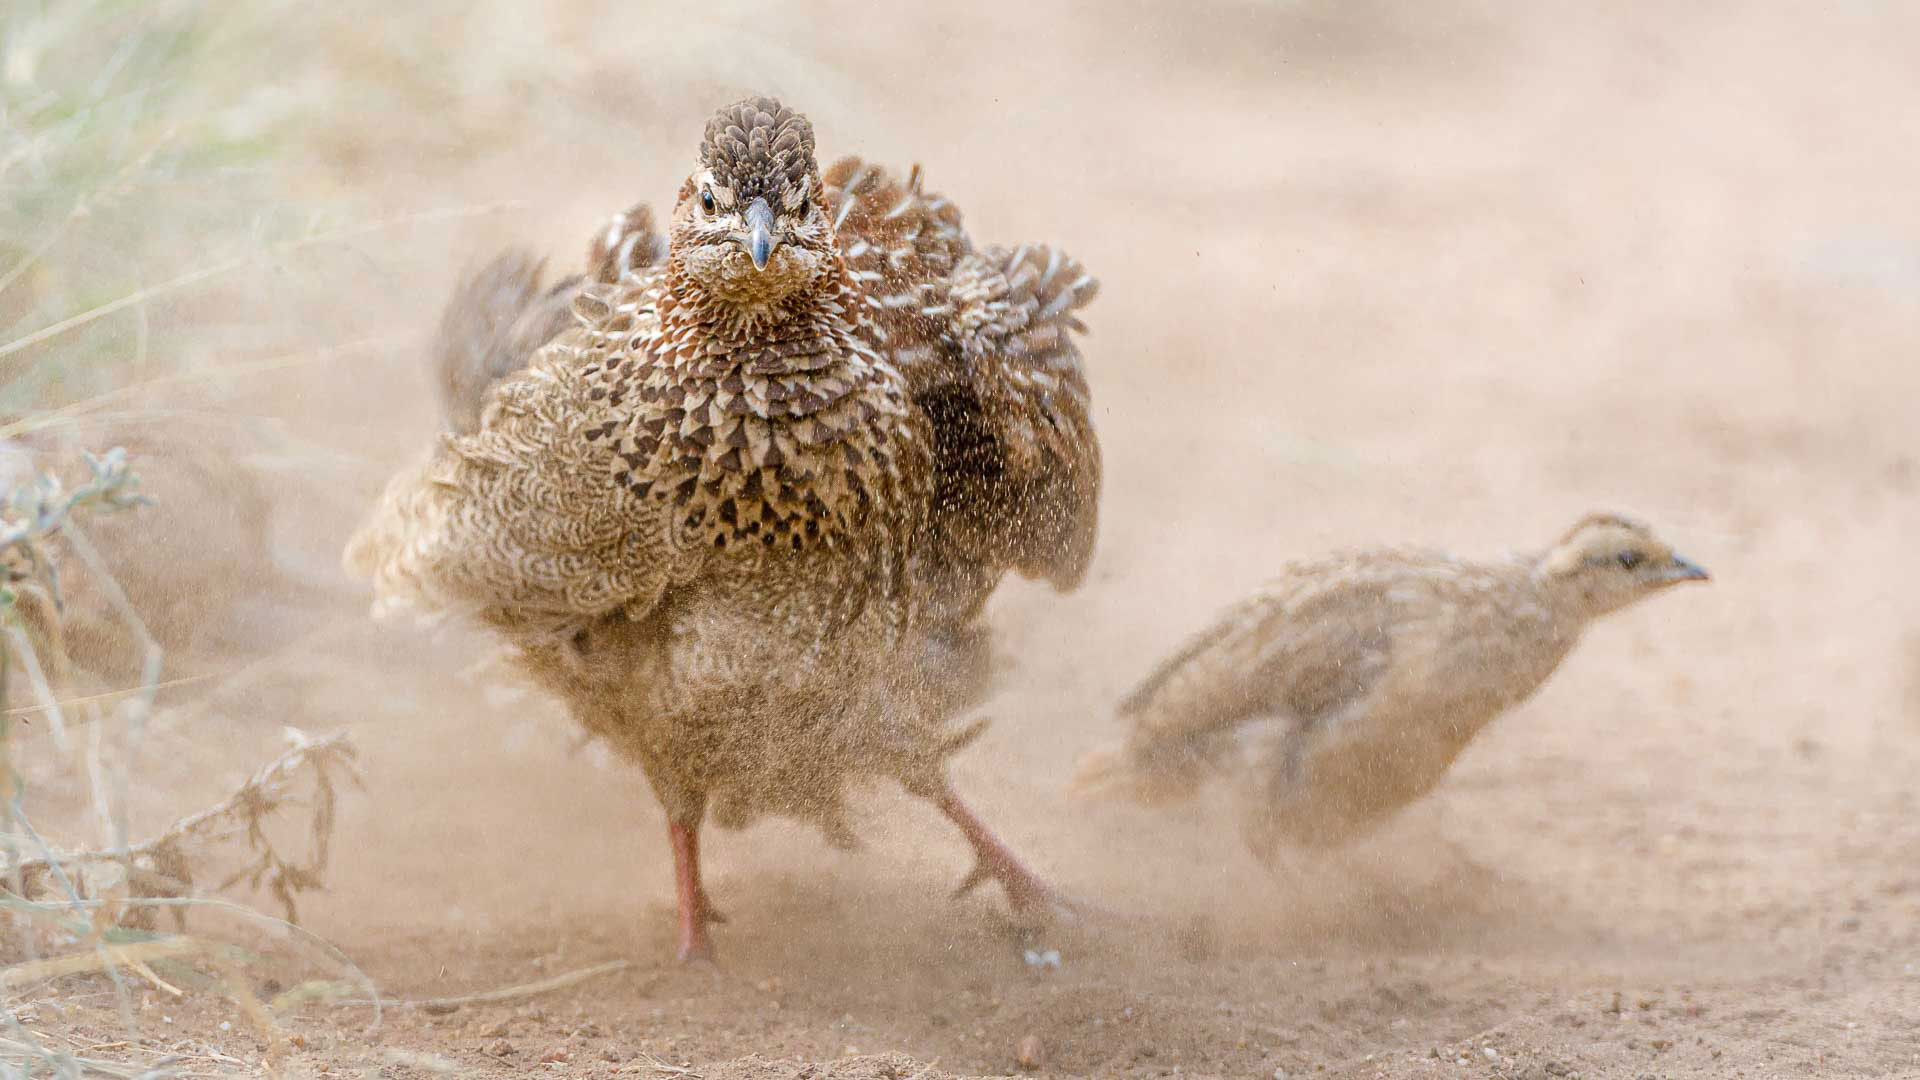 Tanda Tula - Crested Francolin in the Greater Kruger, South Africa